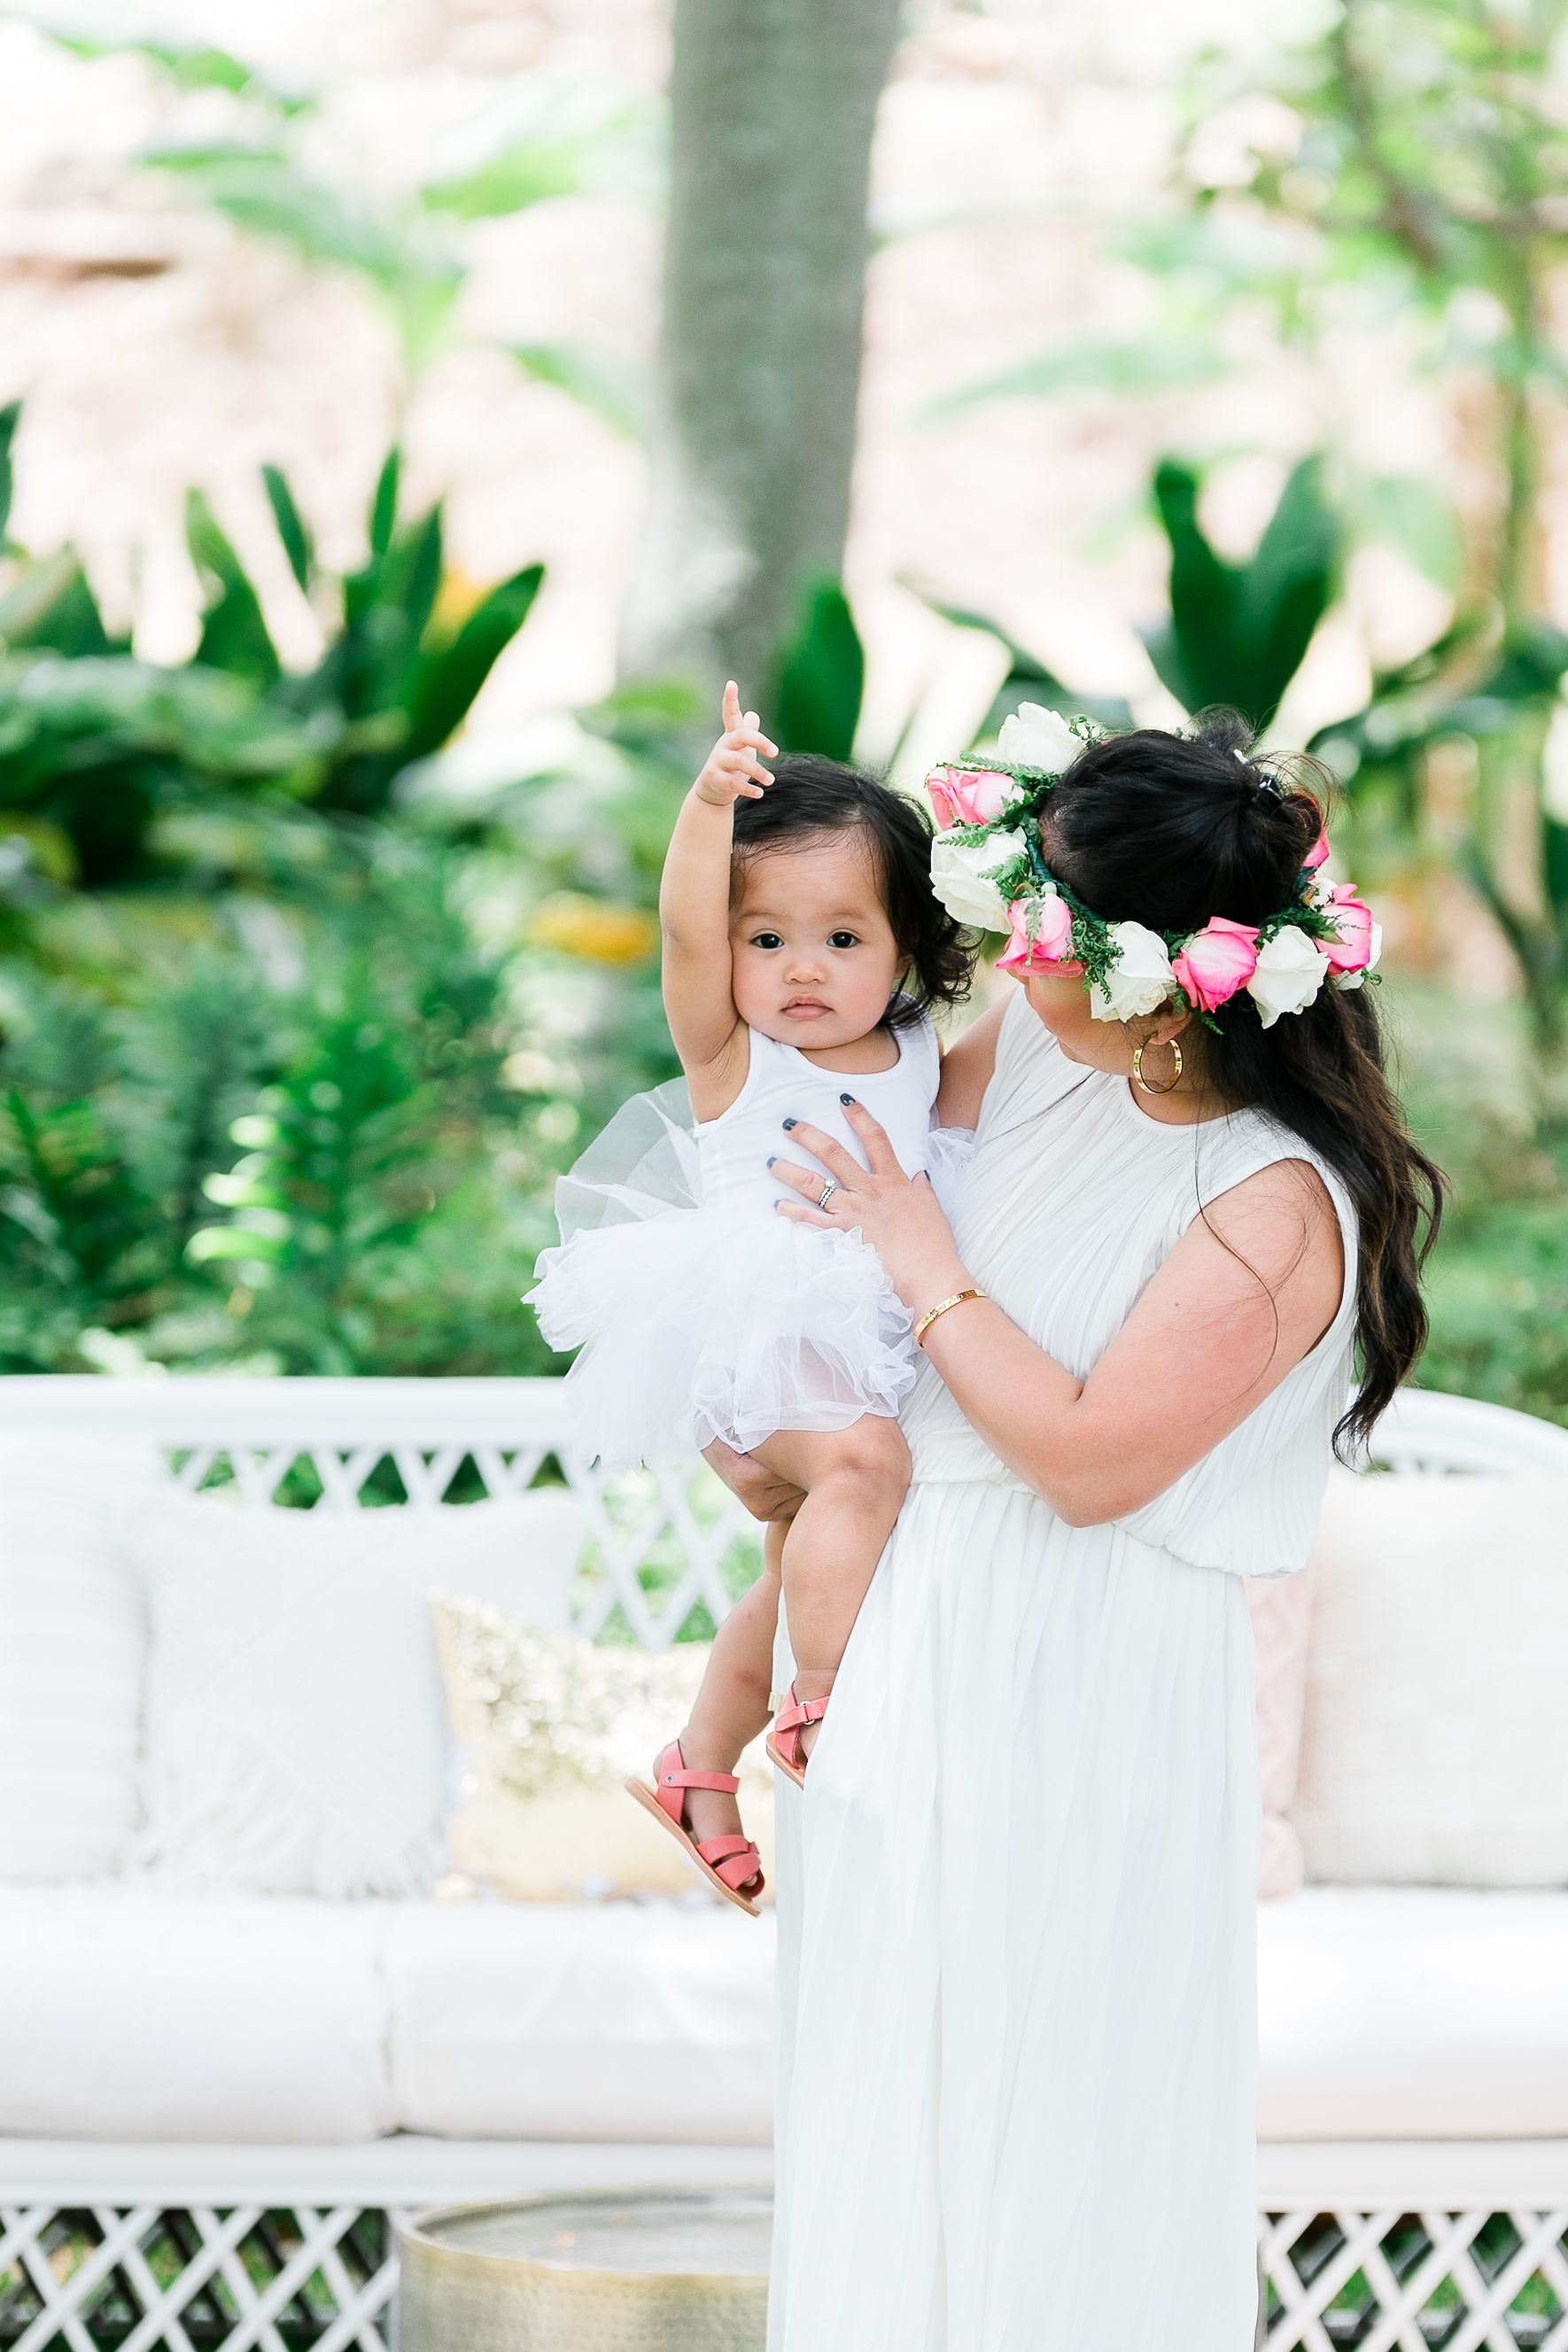 JamesRamosPhotography-LiviGrace_1stBirthday-50.jpg